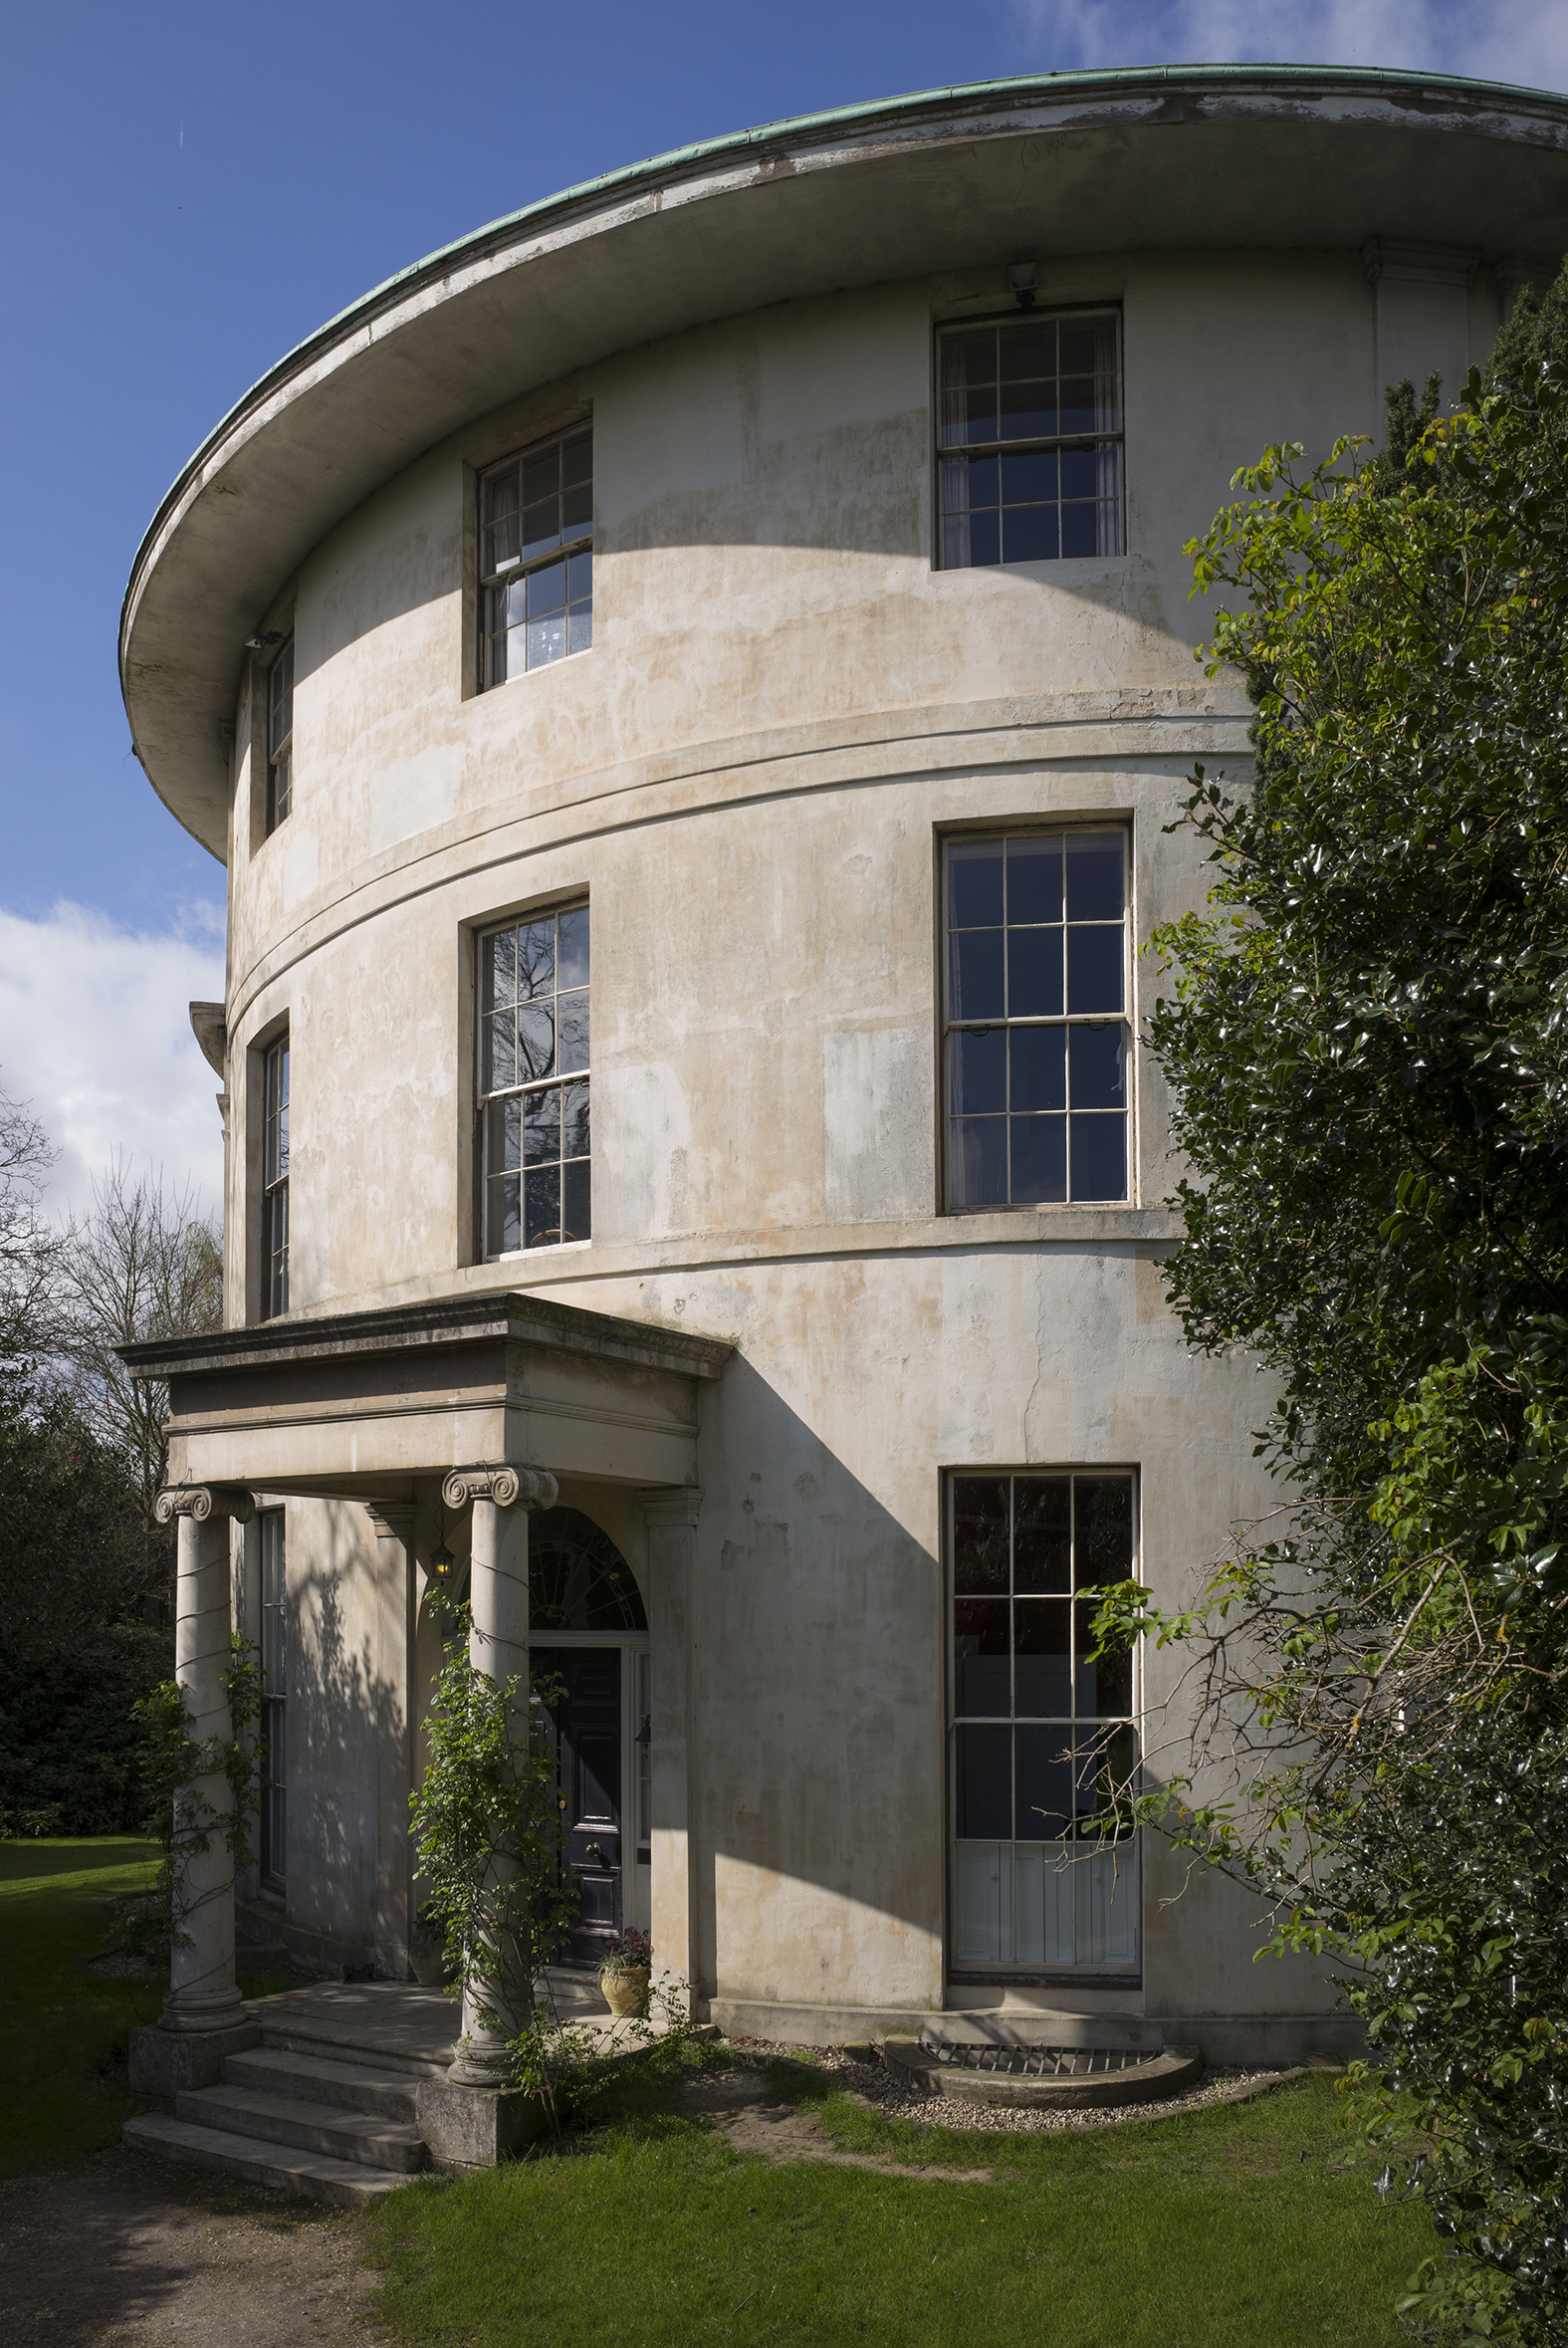 The Round House - Havering-atte-Bower